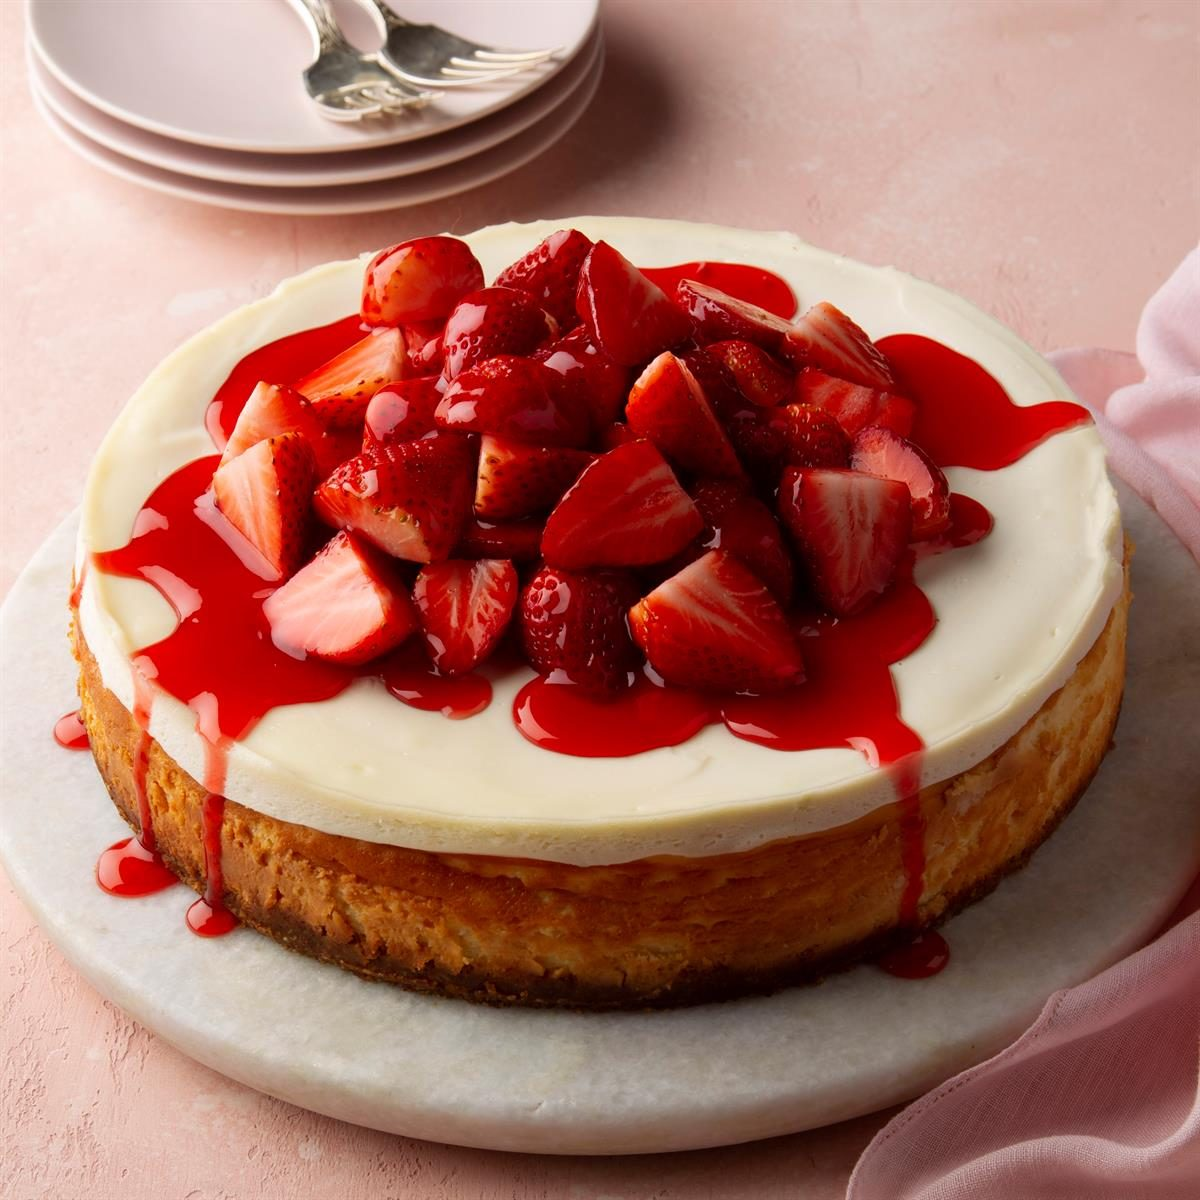 Admirable Strawberry Cheesecake Recipe Taste Of Home Funny Birthday Cards Online Barepcheapnameinfo